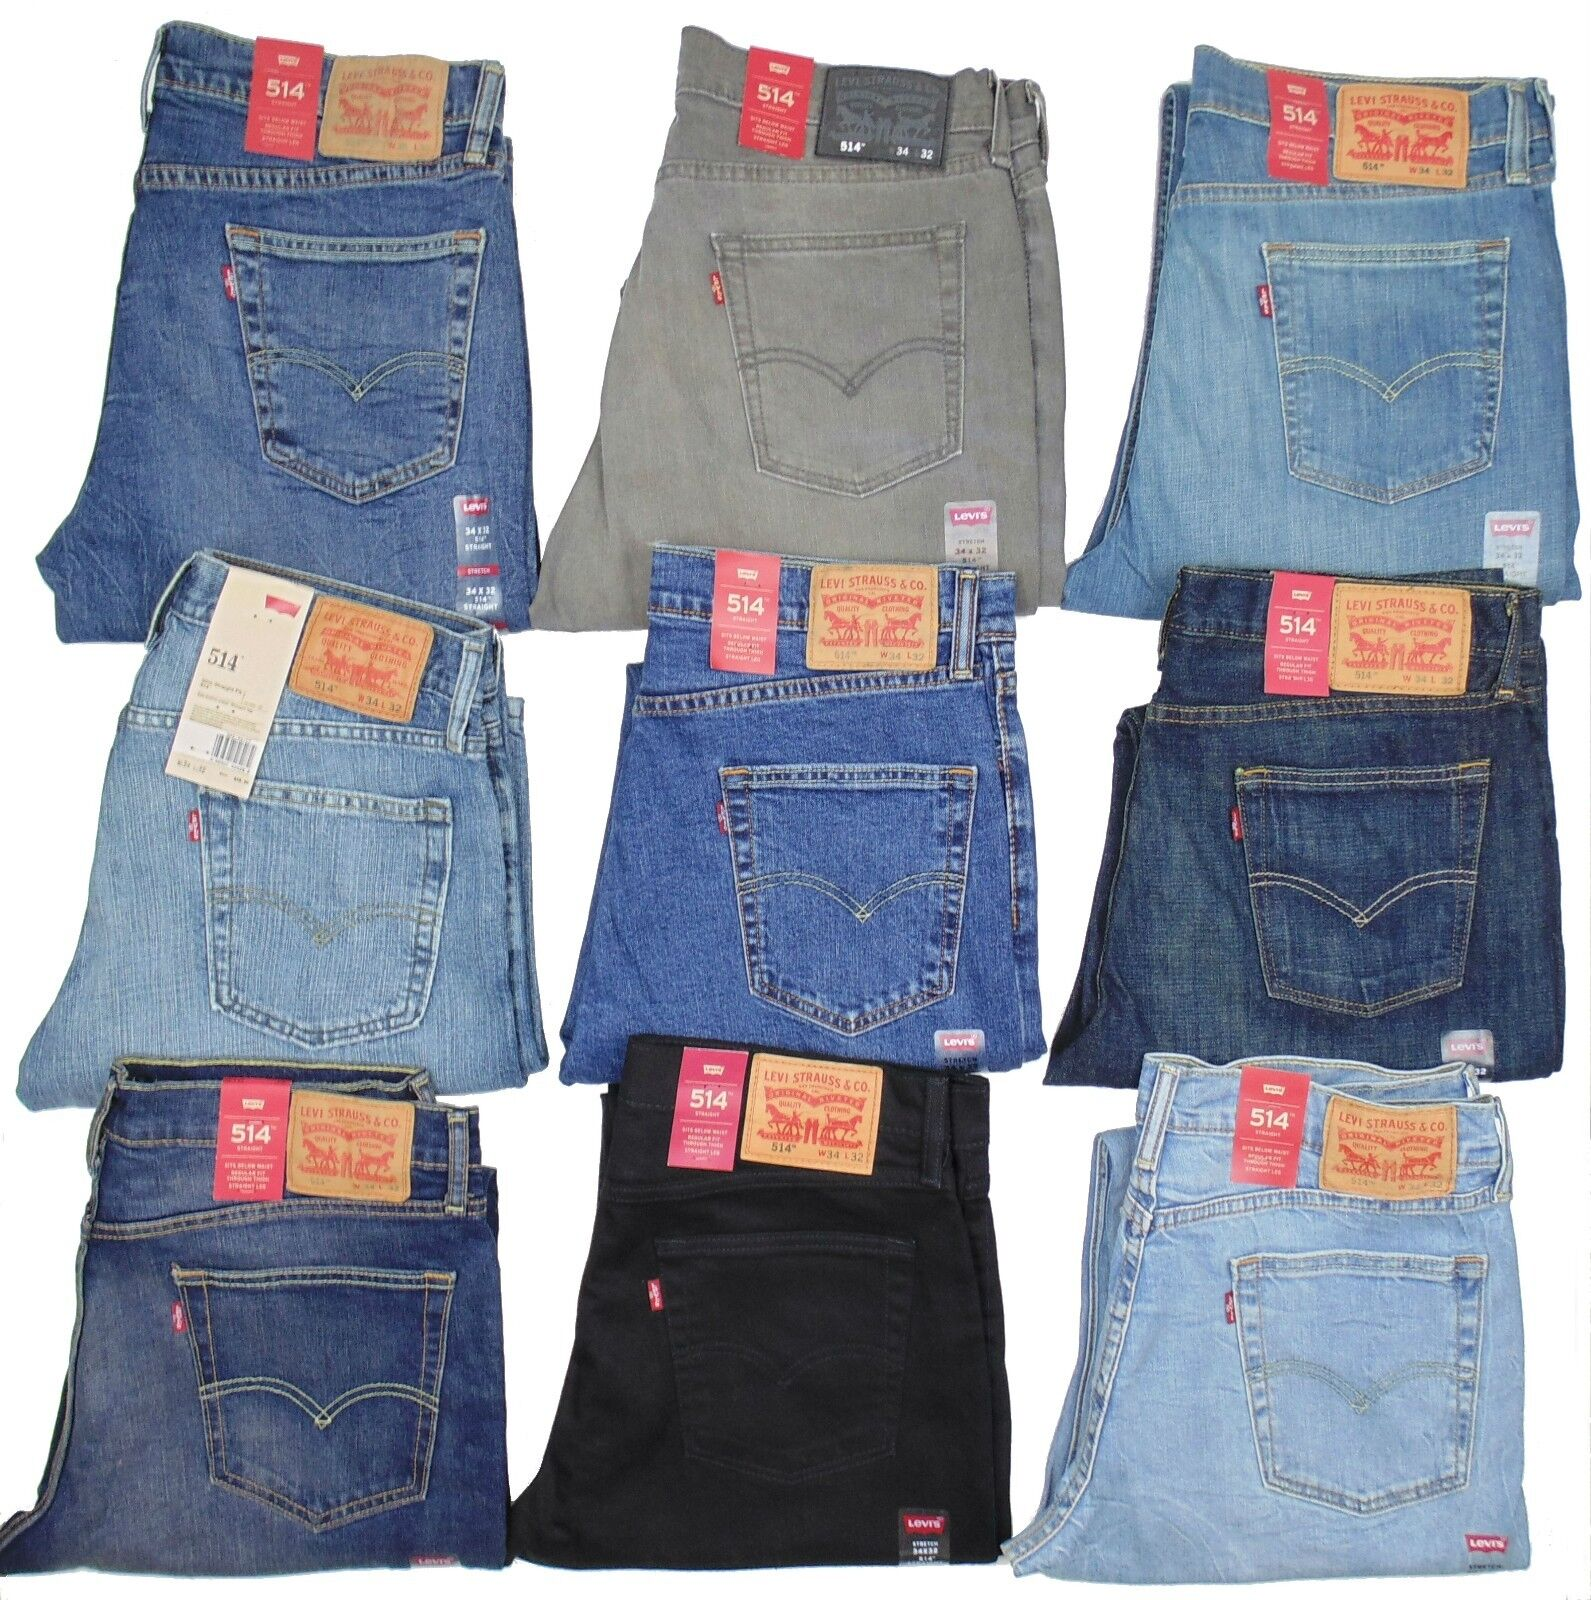 From a list of the best products made by LEVI'S VINTAGE CLOTHING, you will without a doubt go crazy for the article of your dreams, at a very attractive price. Find only at Vestiaire Collective: the most trendy bags for women at low prices.